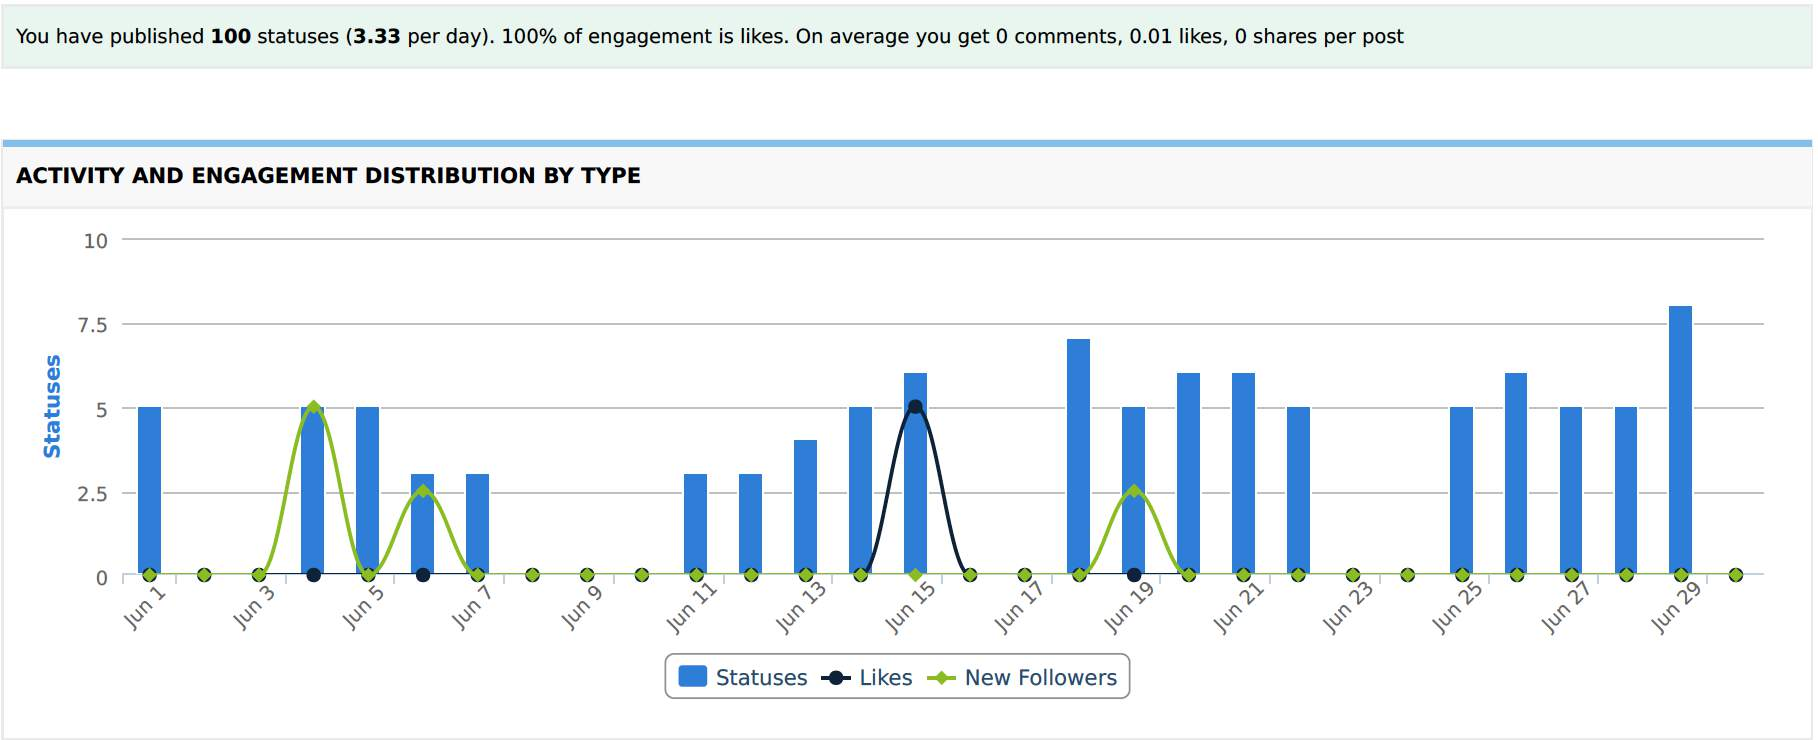 Activity and Engagement Distribution by Type